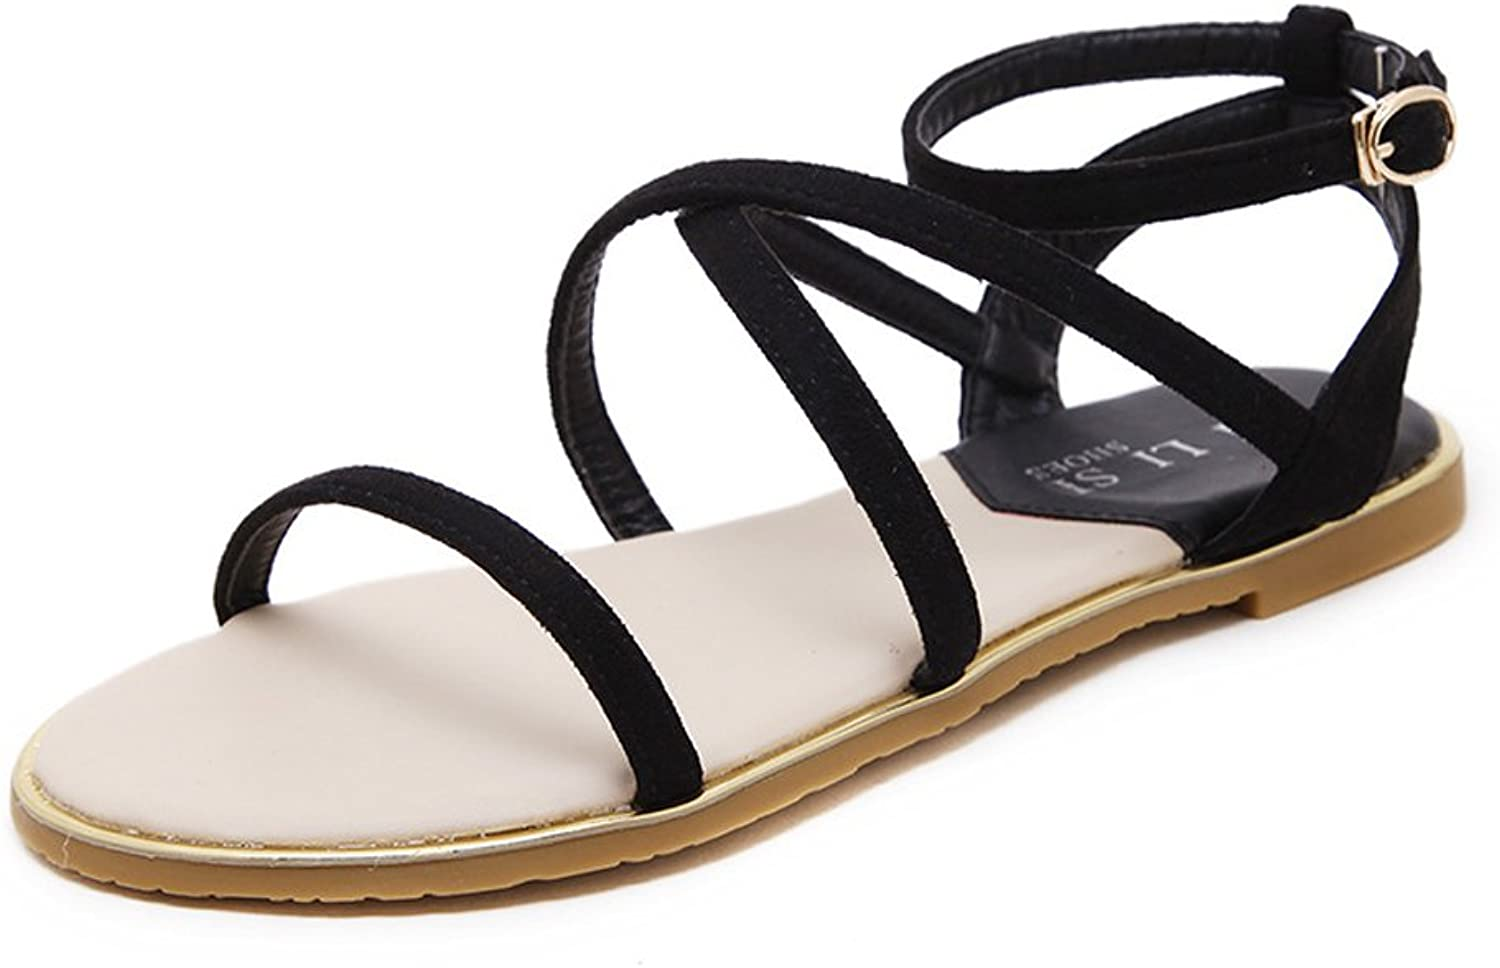 Navoku Womens Leather Ankle Strap Sandles Sandals